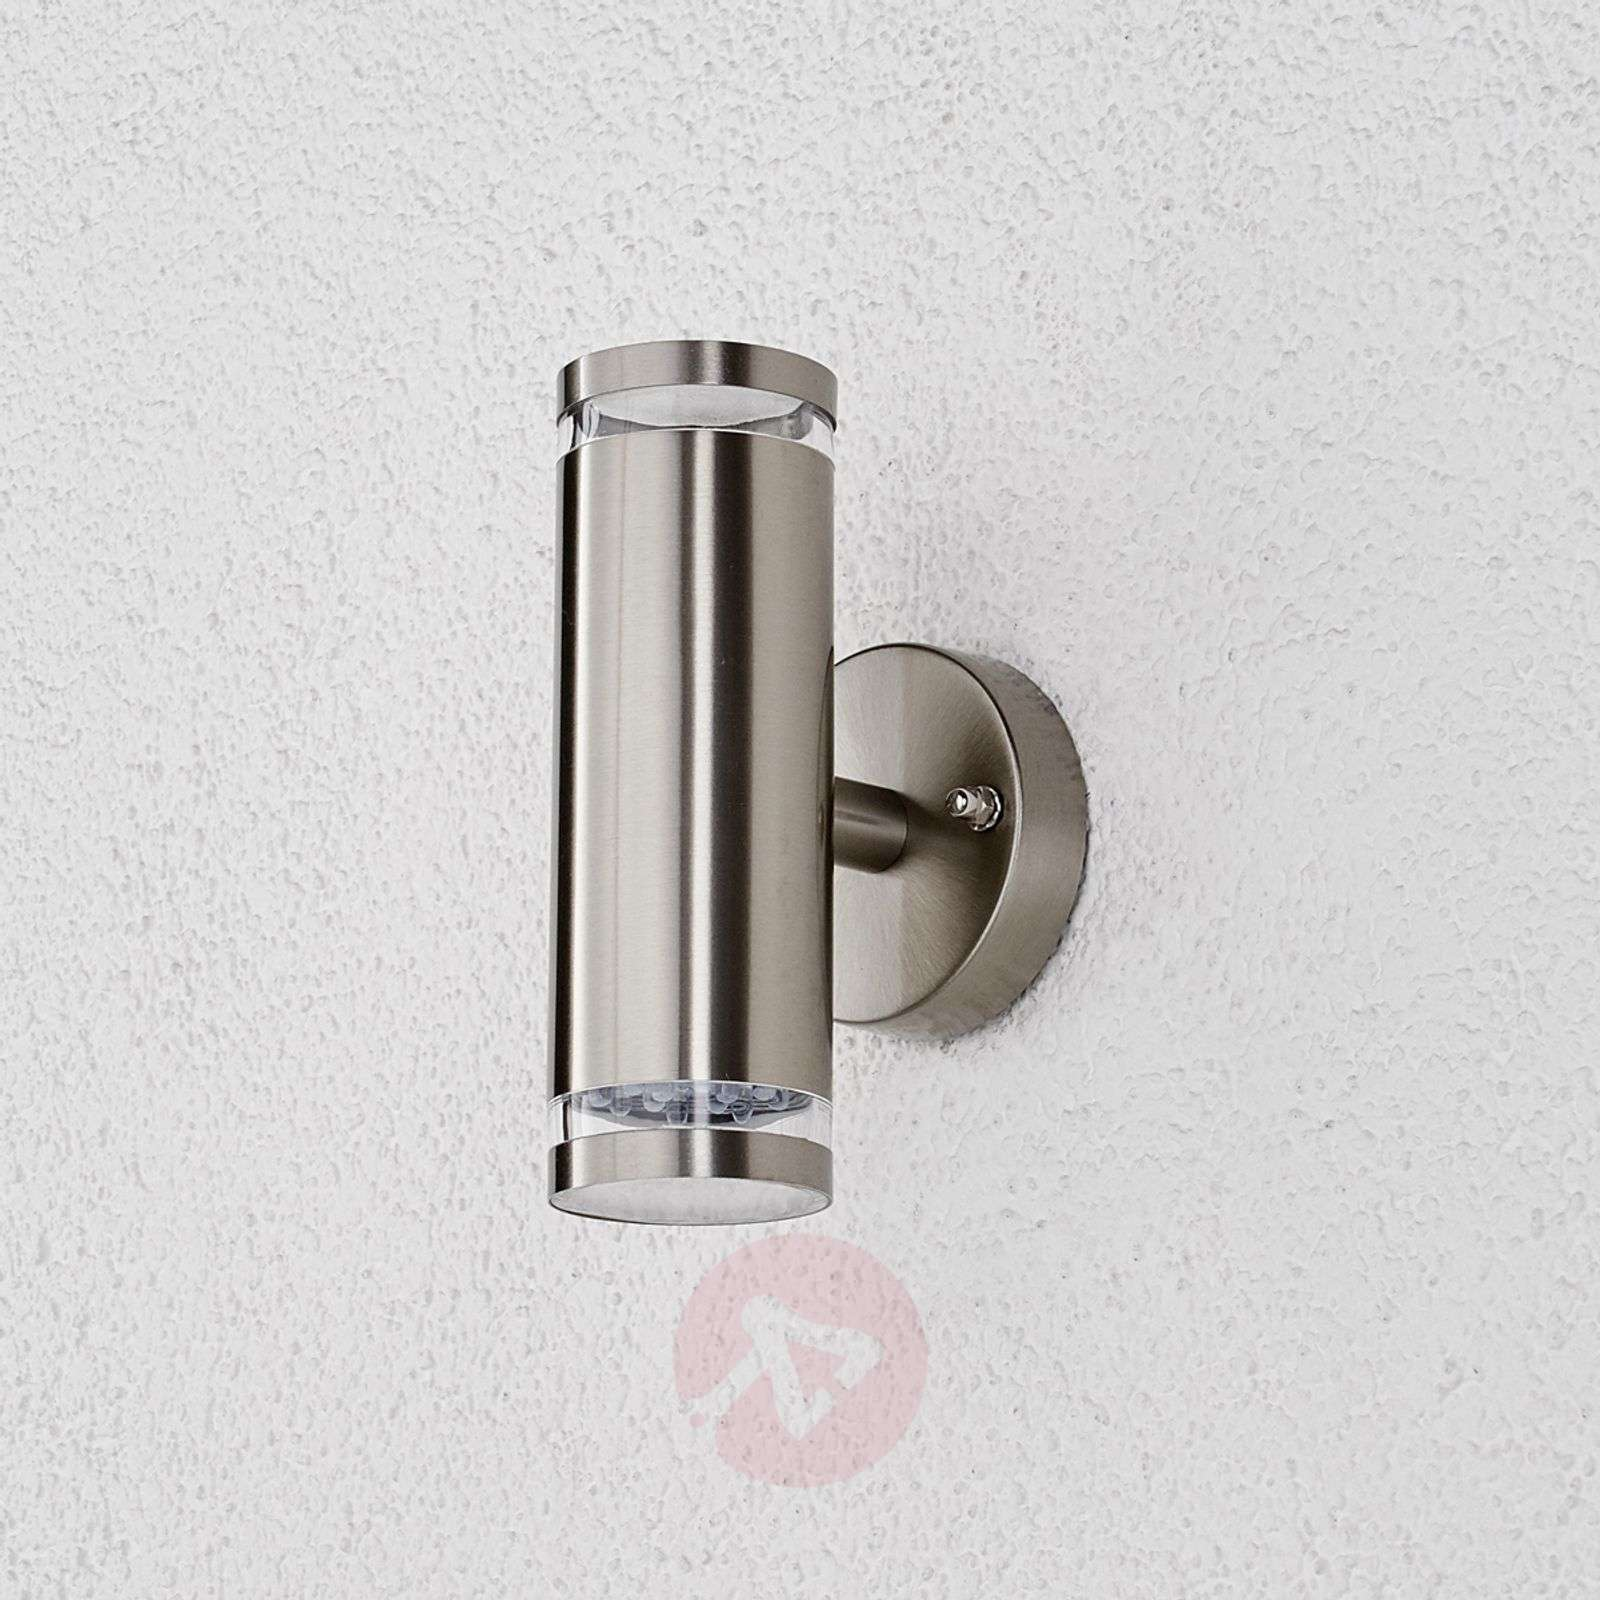 Outdoor Wall Lamps Led : Tiberus stainless steel LED outdoor wall light Lights.co.uk